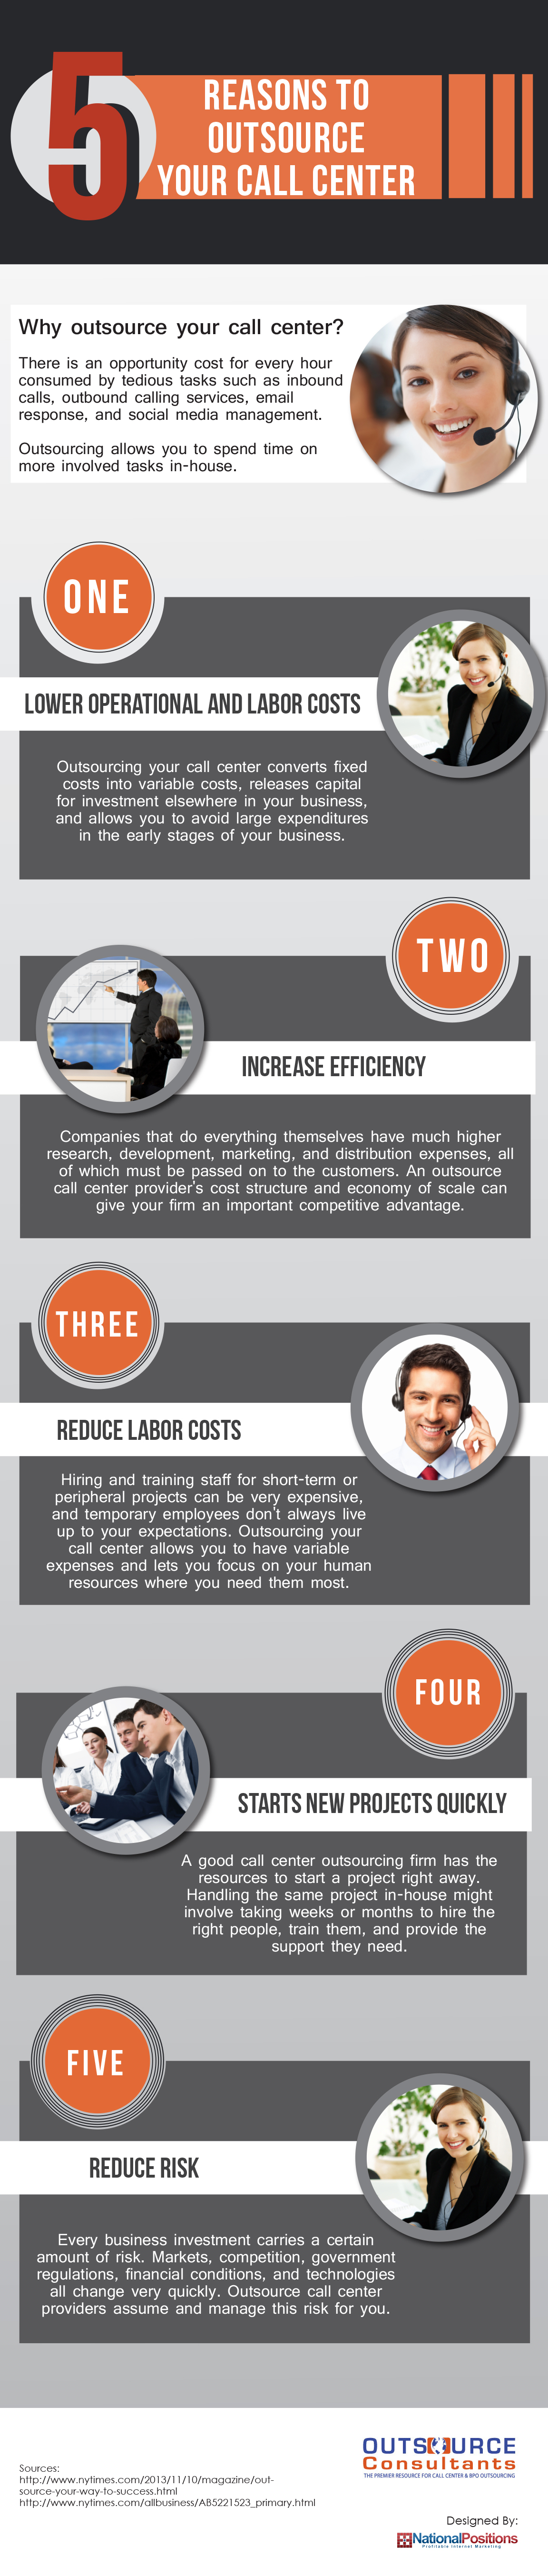 infographic_wireframe_outsourceconsultants_may_2014_new_edits_(1)_(1)